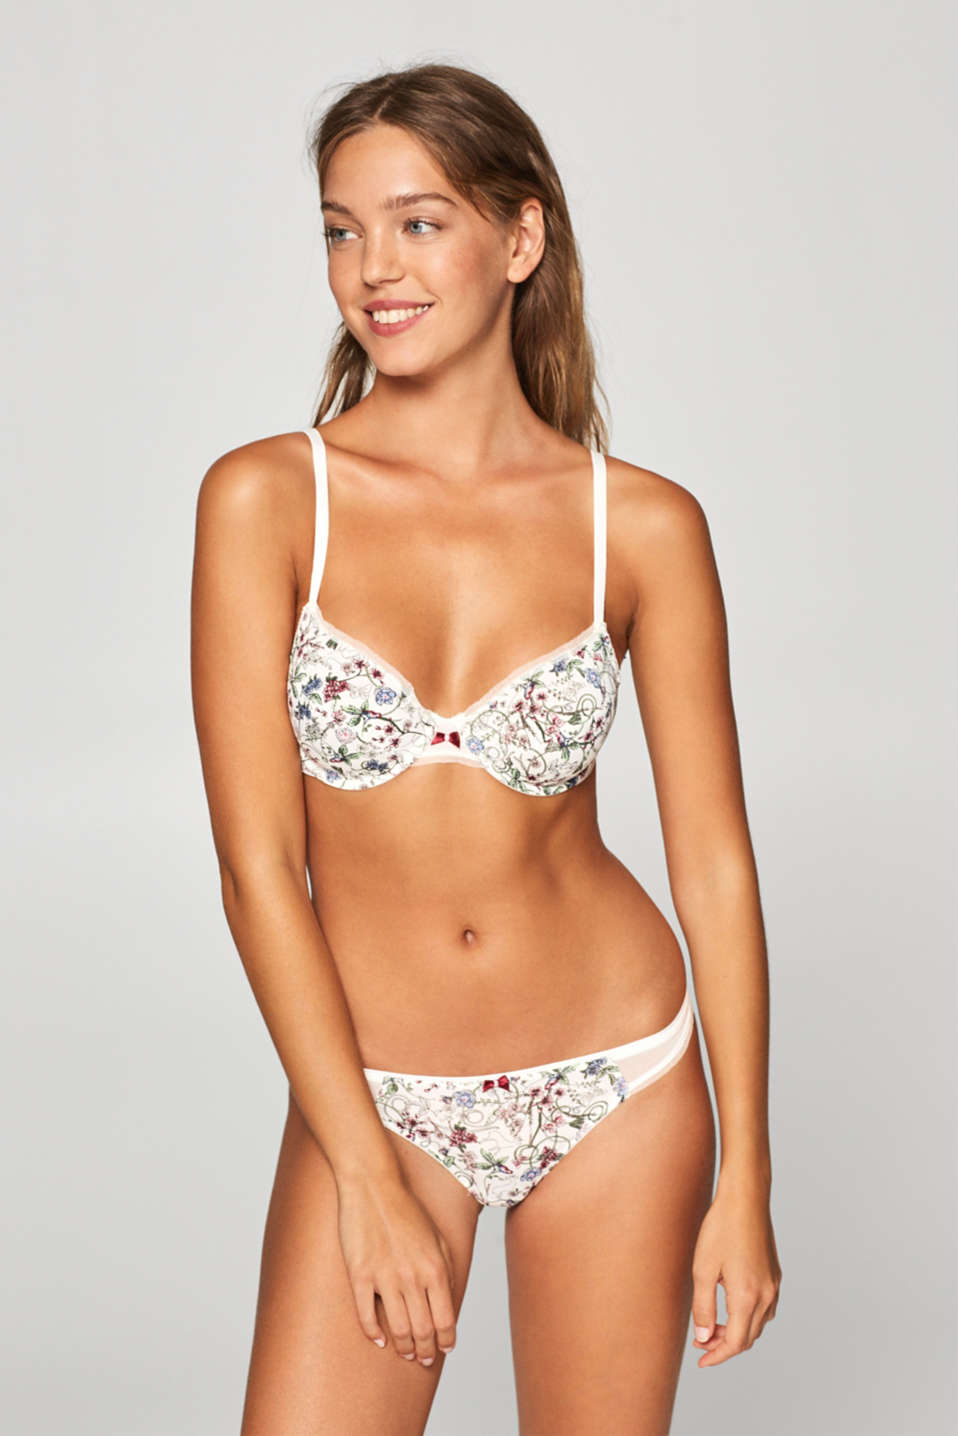 Esprit - Unpadded underwire bra with a floral print